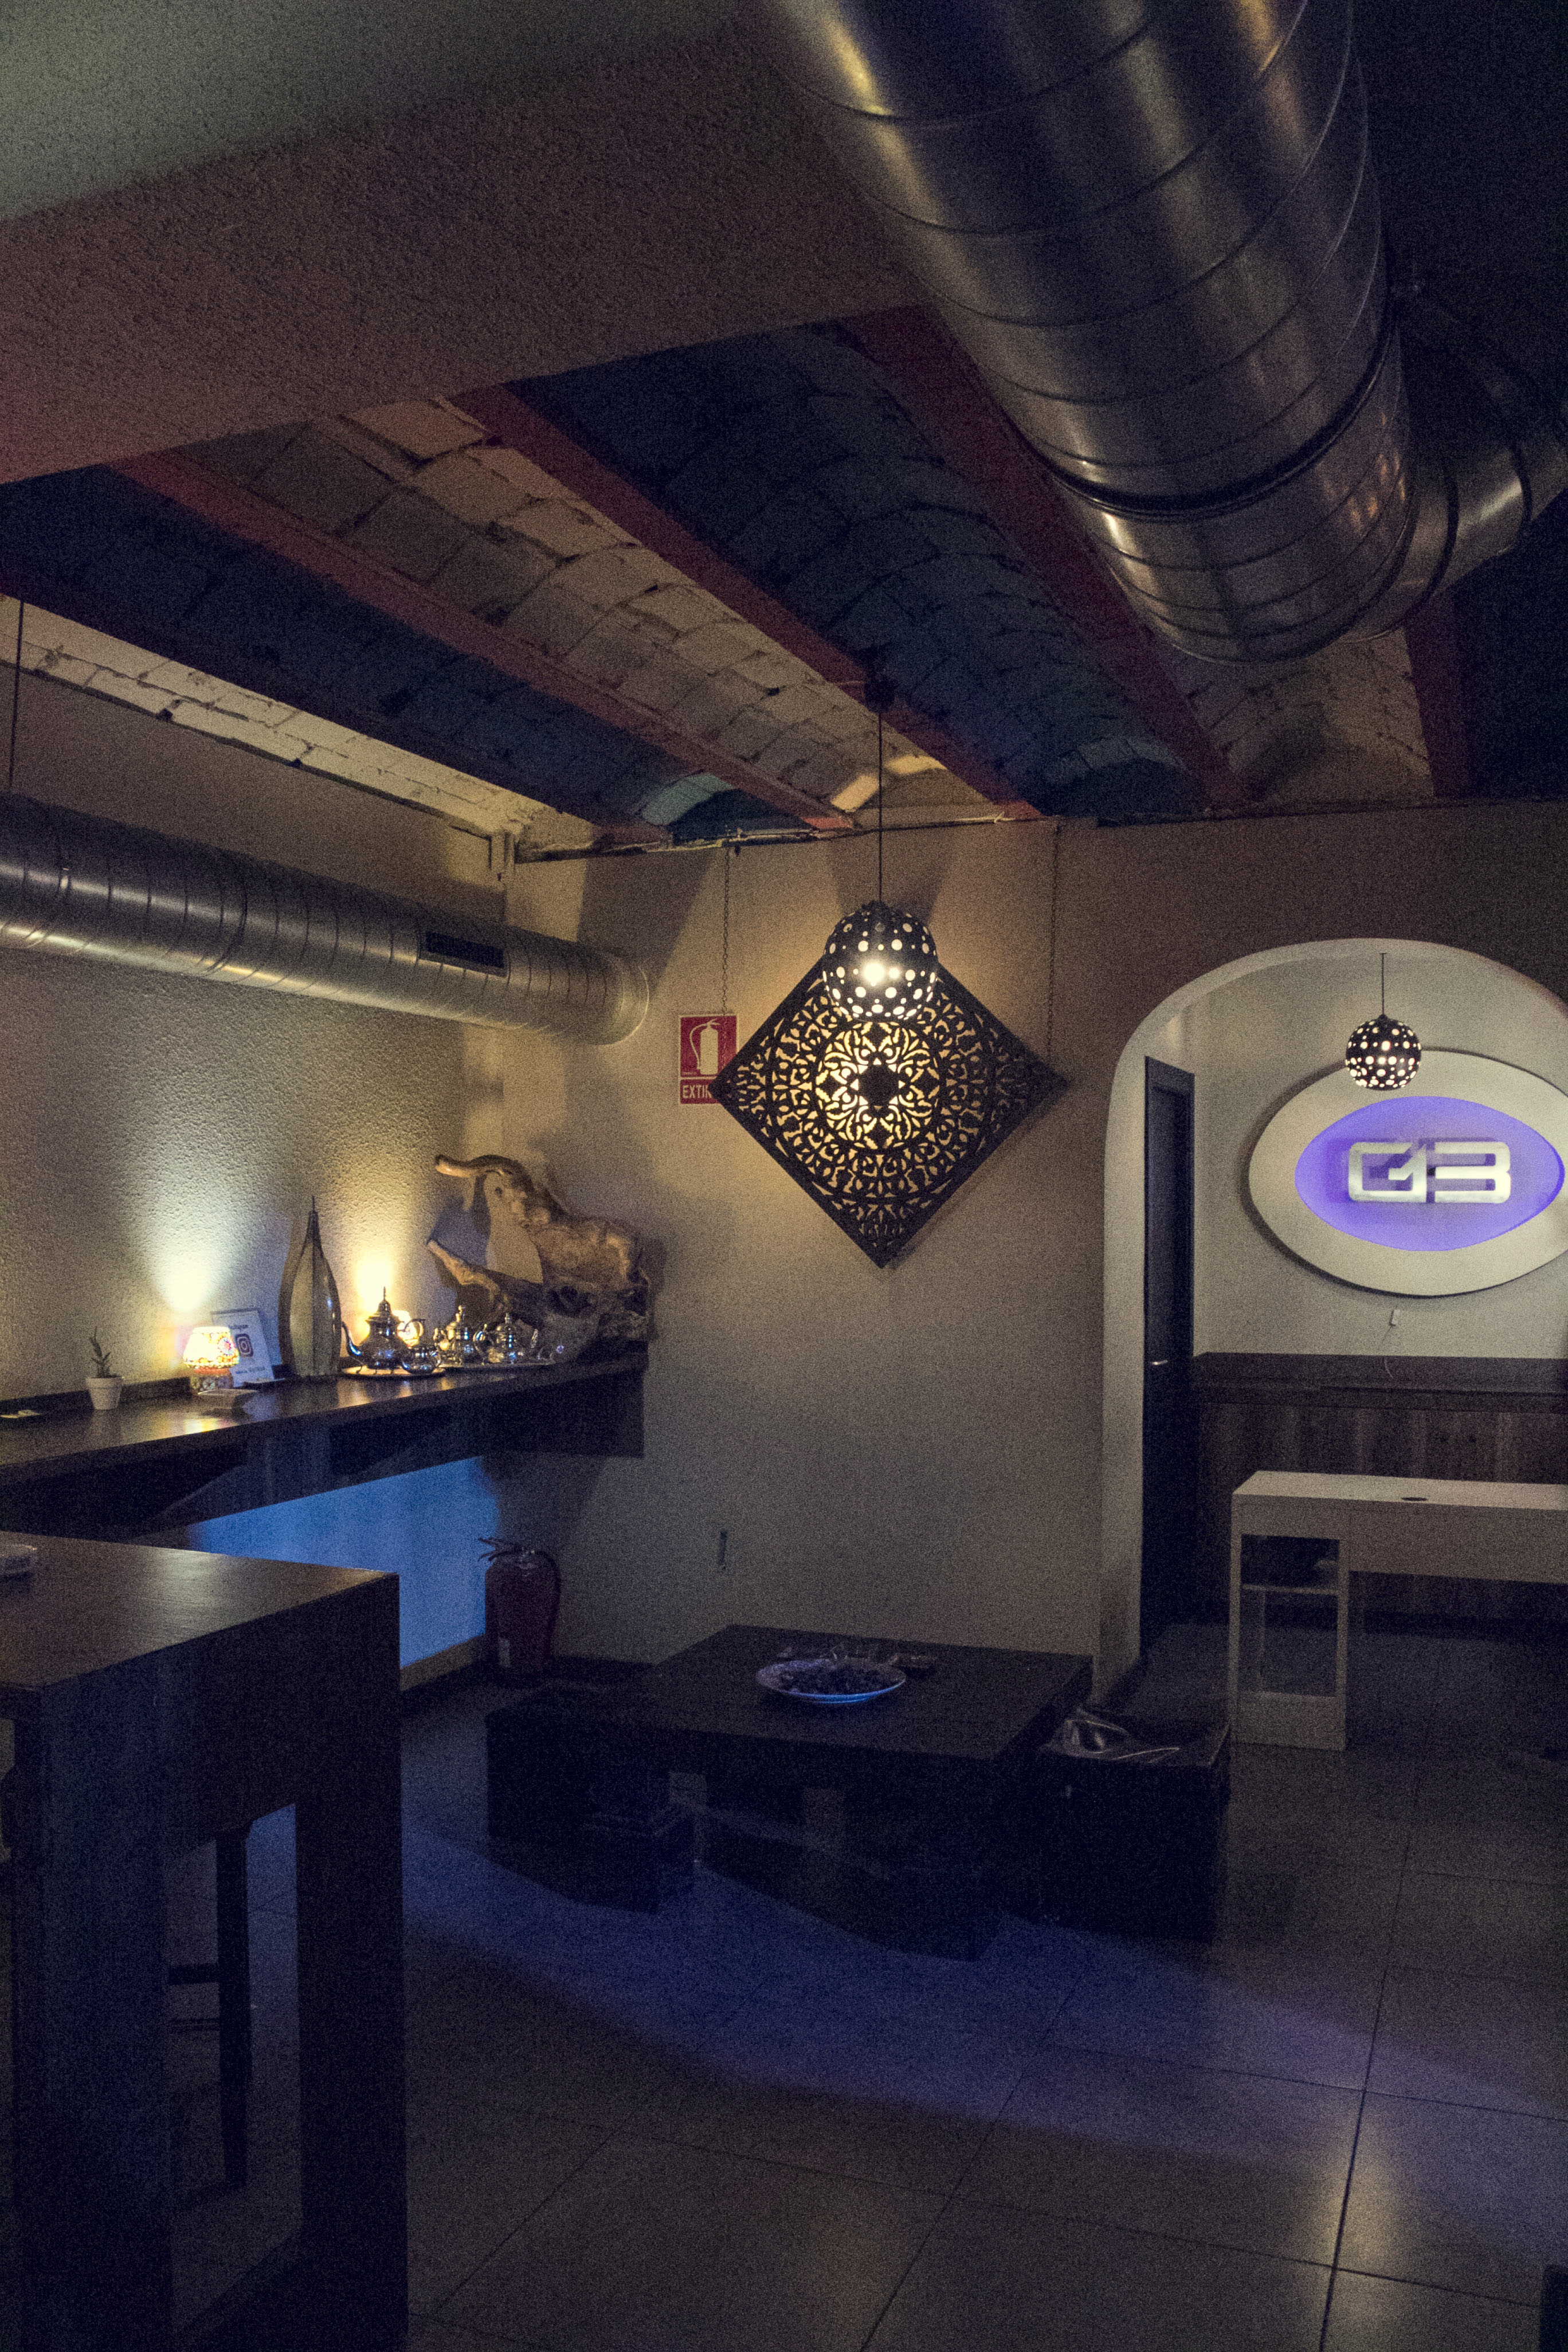 g13 cannabis club chilling area with logo on the wall